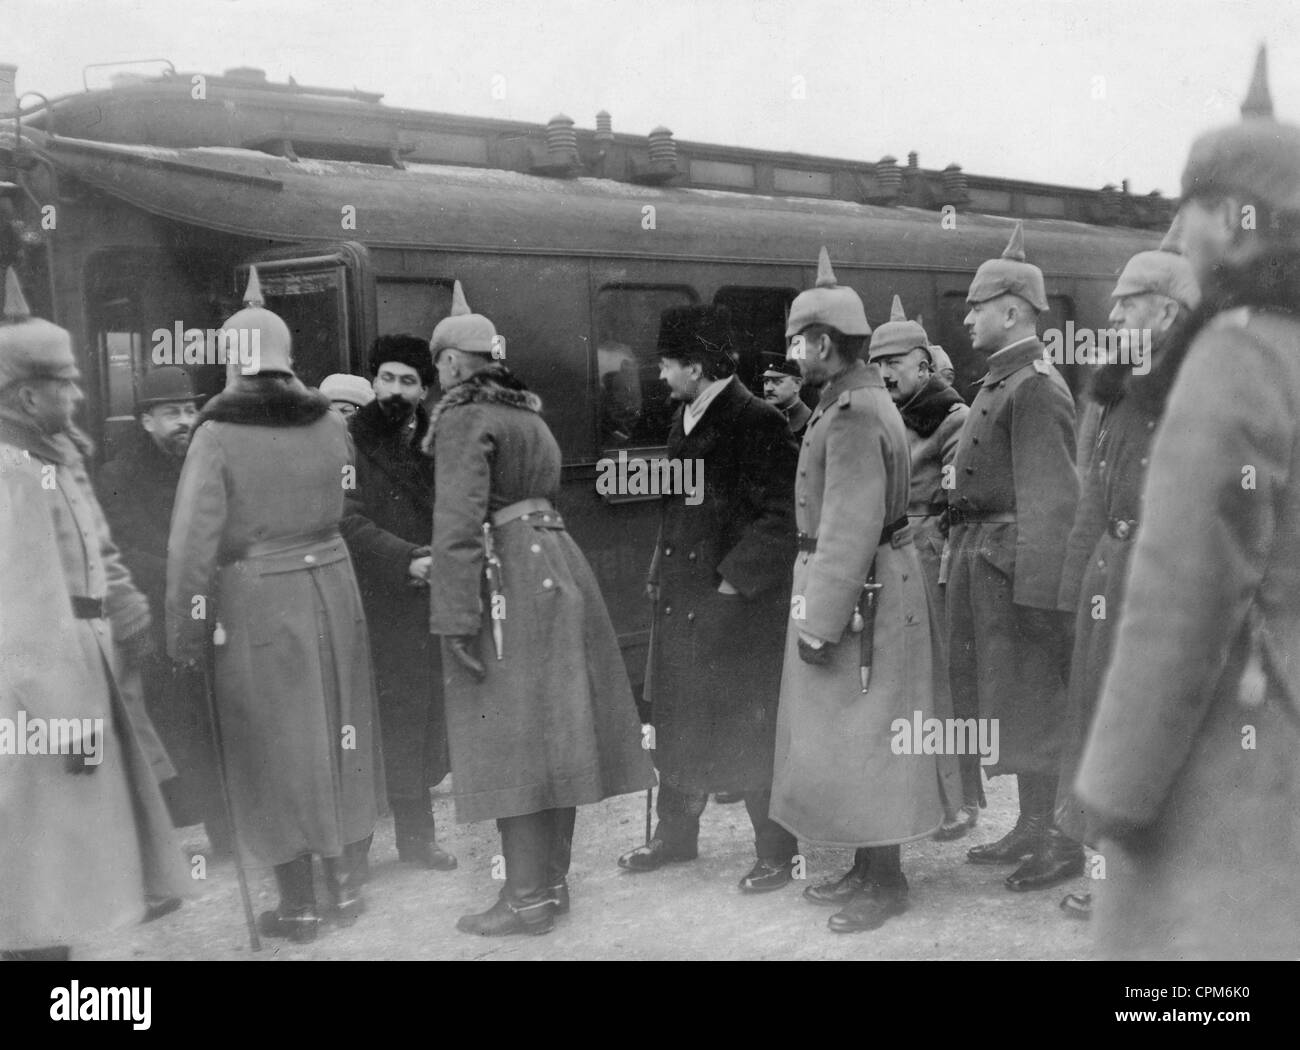 Reception of the Russian delegation in Brest-Litovsk, 1918 - Stock Image